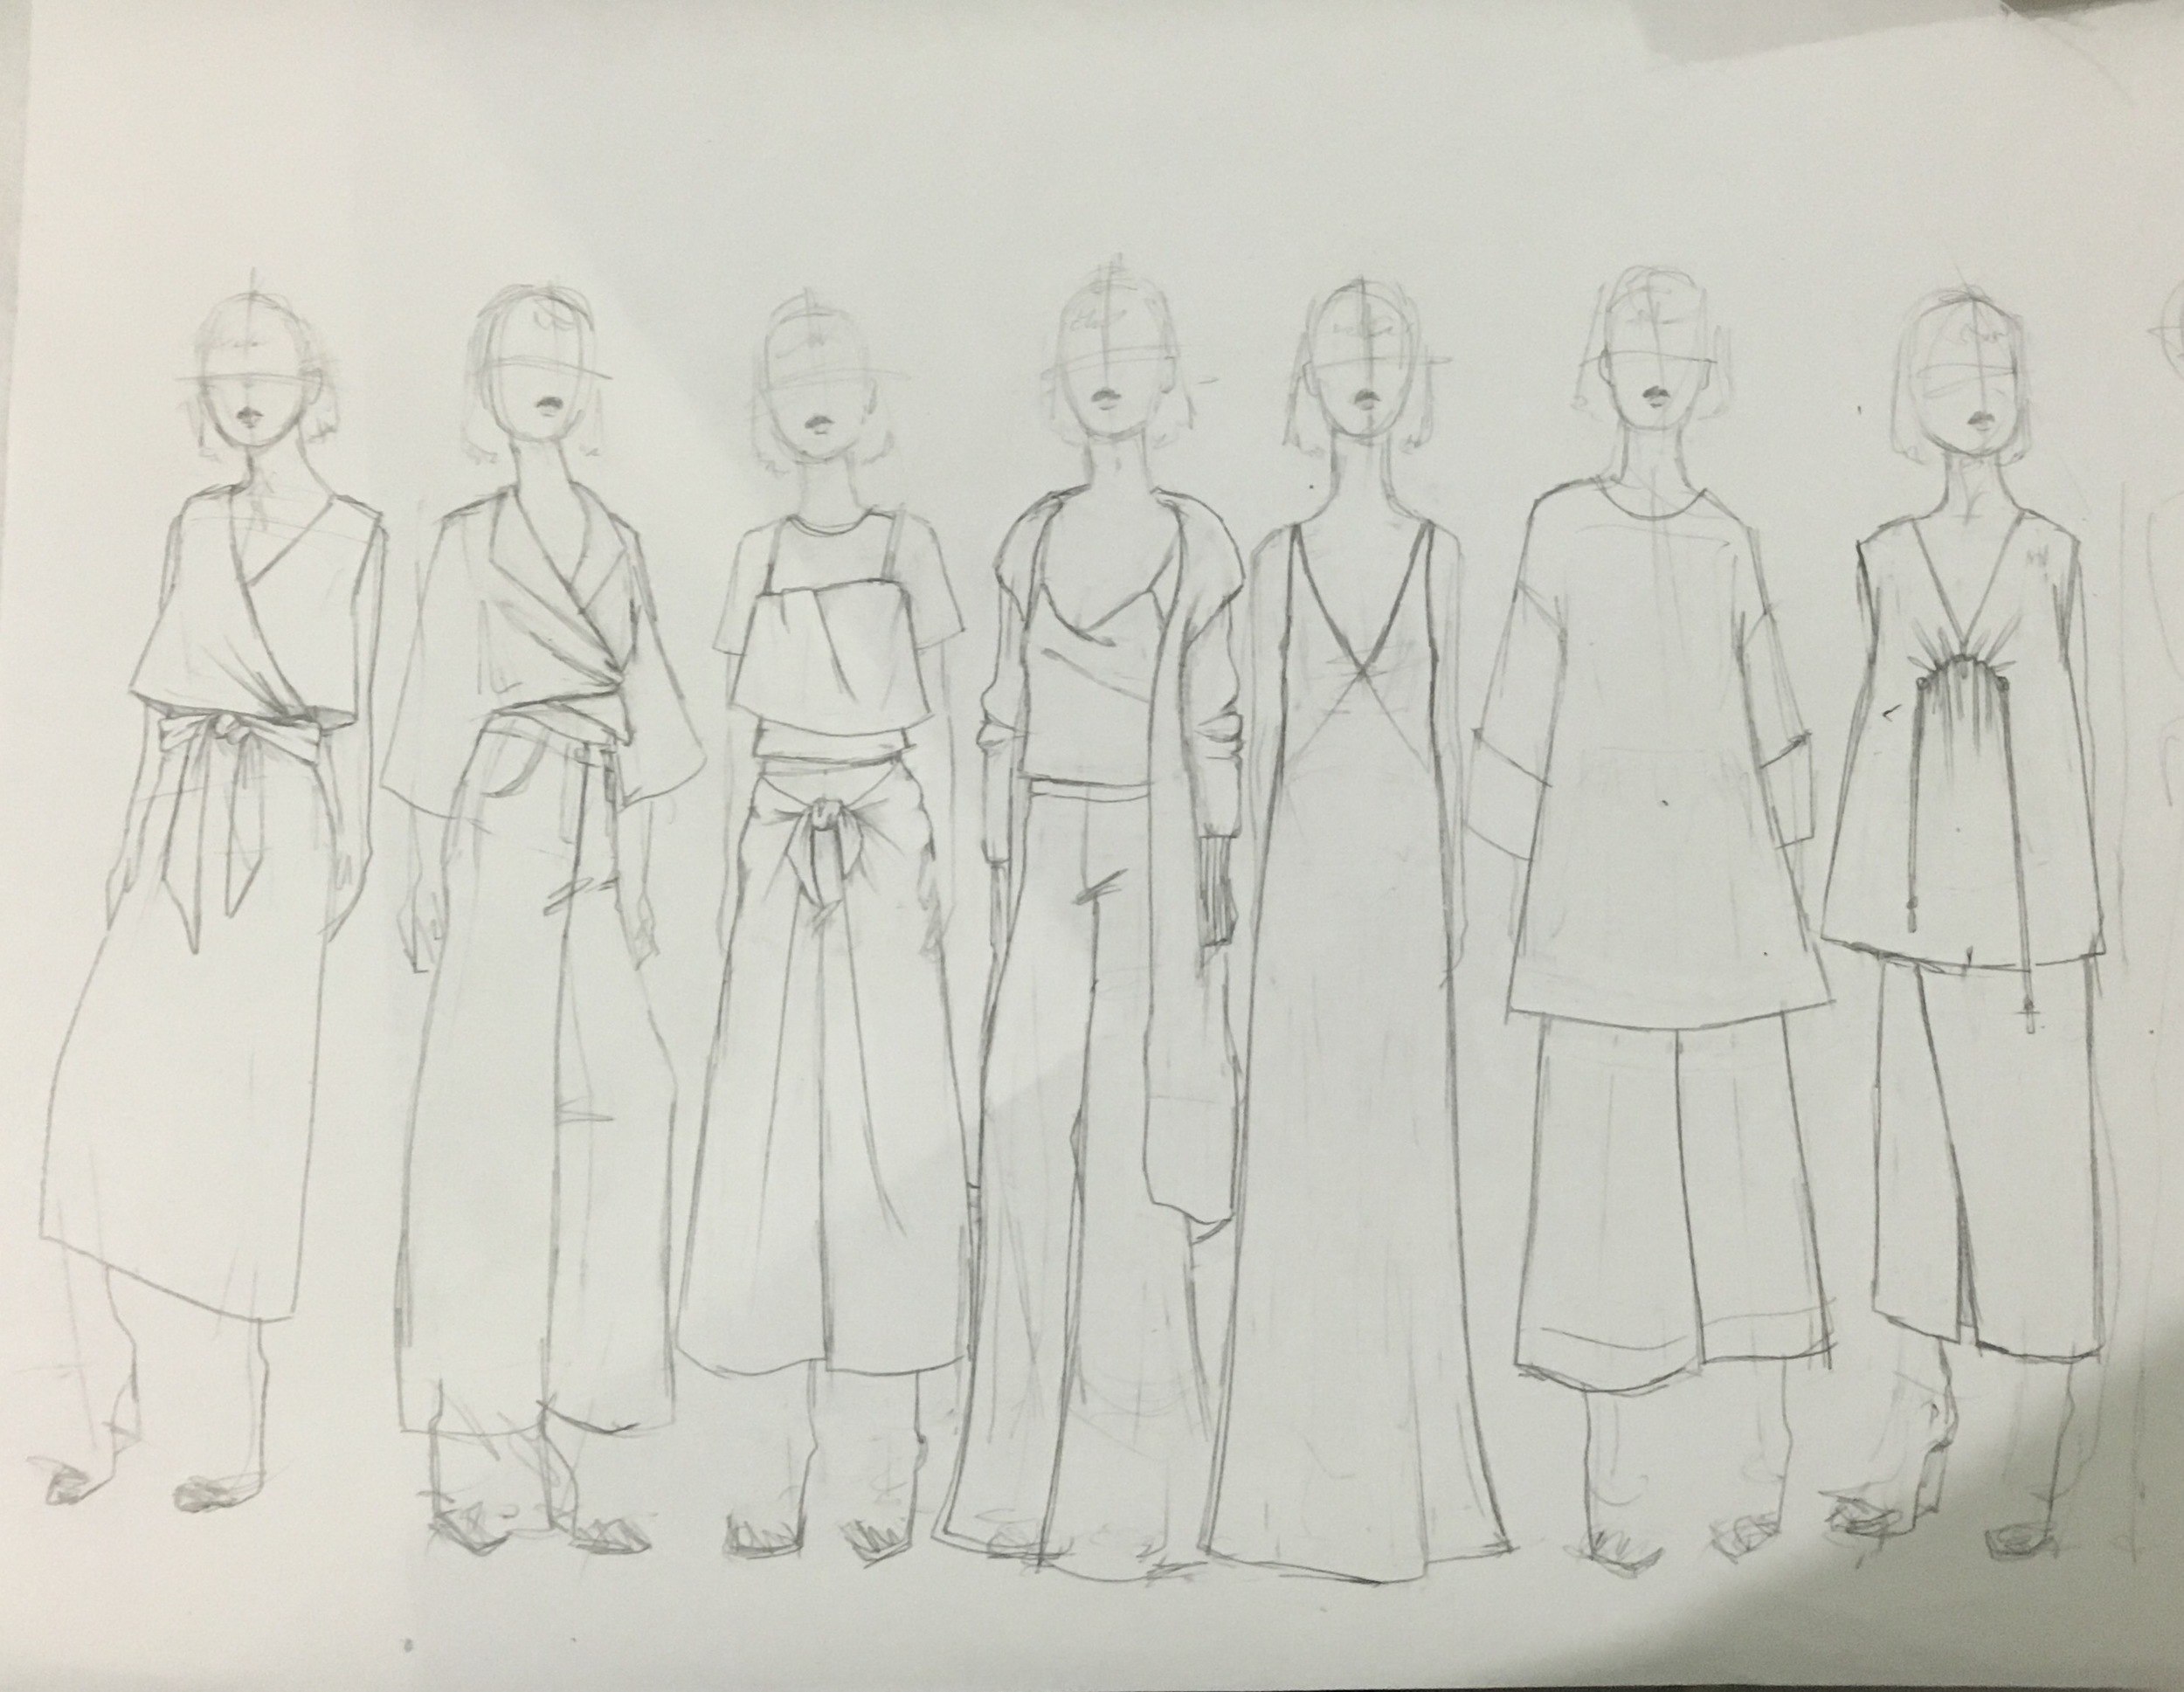 design sketches for a fall womenswear collection